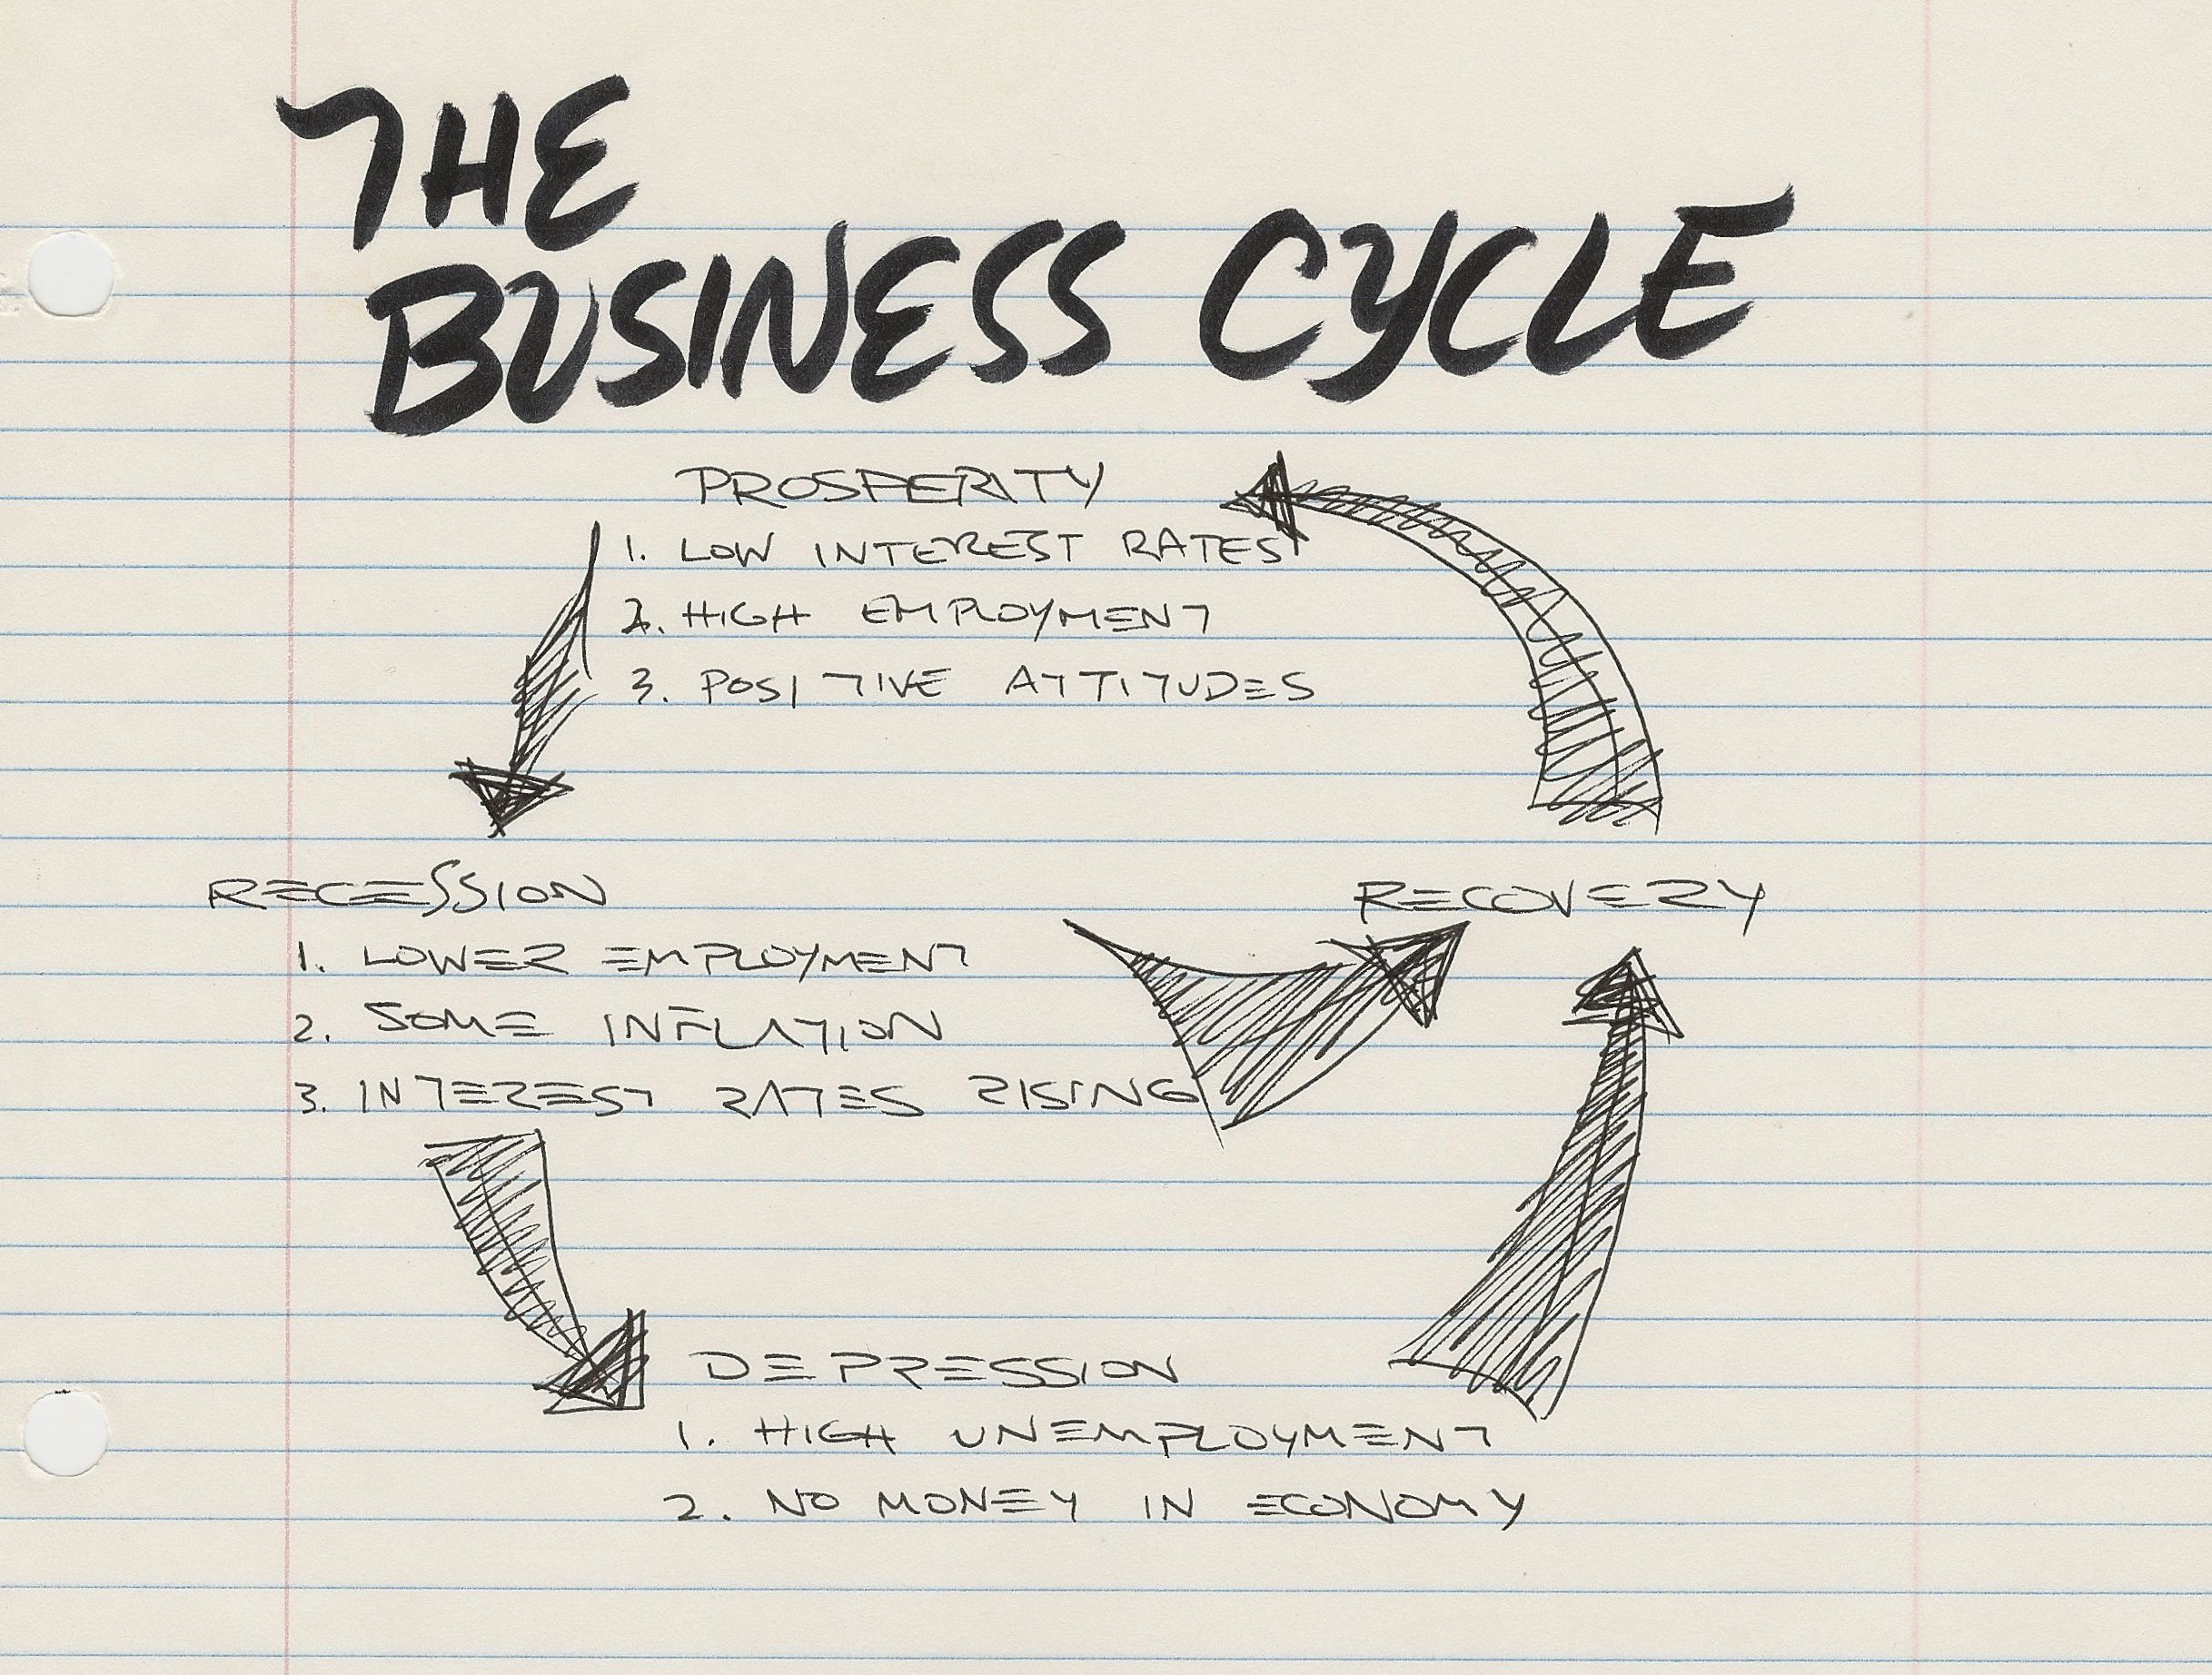 business cycle essay international business essays jellyfish business cycle studies in economicsbusiness cycle